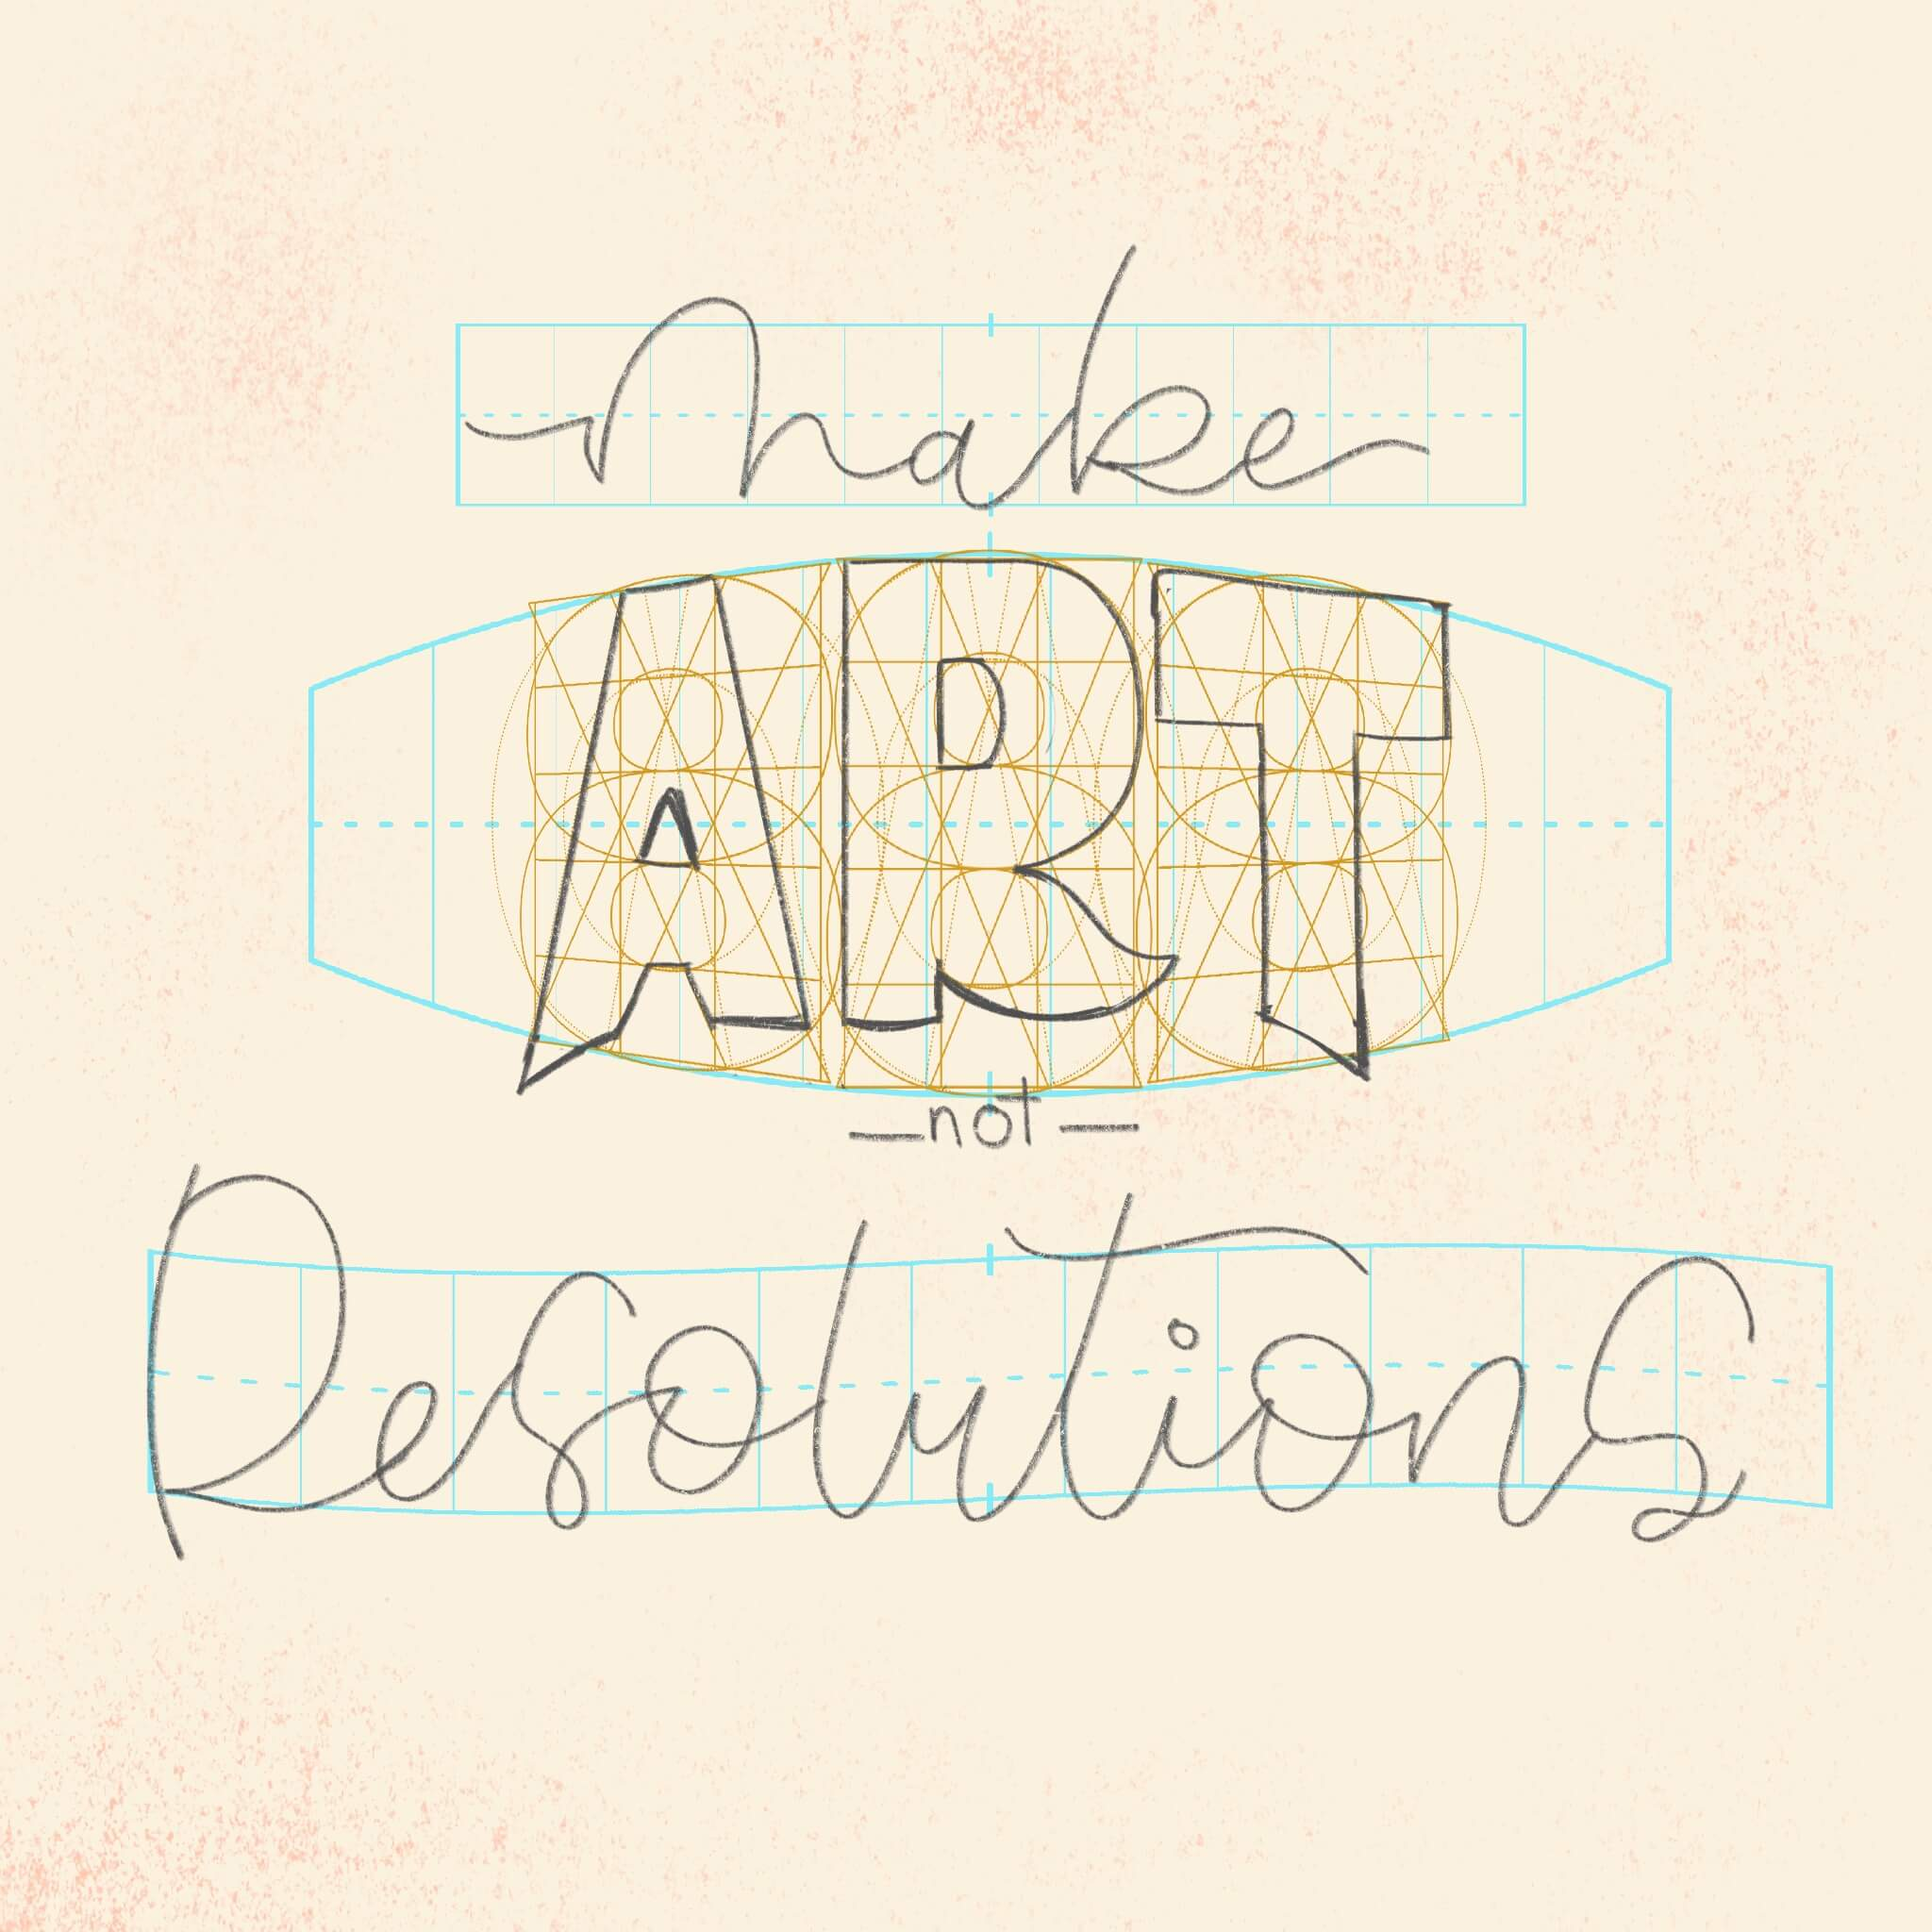 make-art-not-resolutions-letter-this-in-your-style-guides-sketch